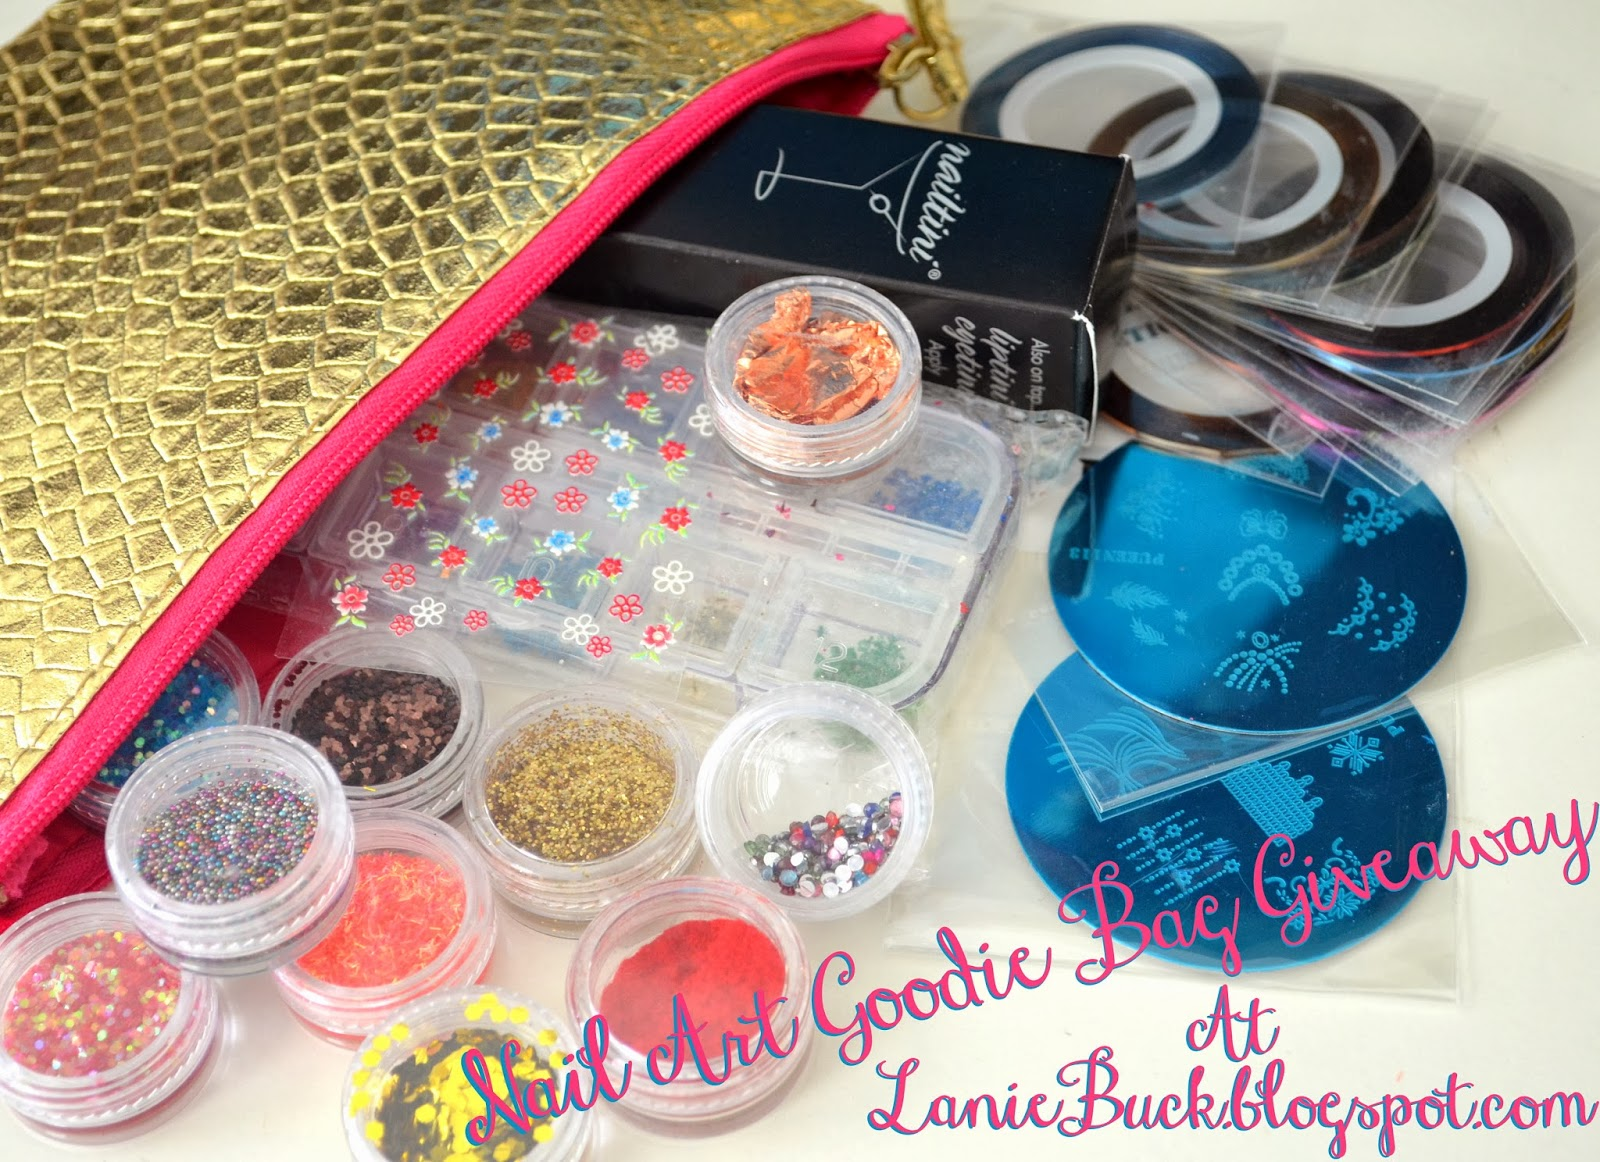 http://laniebuck.blogspot.com/2014/01/giveaway-golden-birthday-nail-art.html